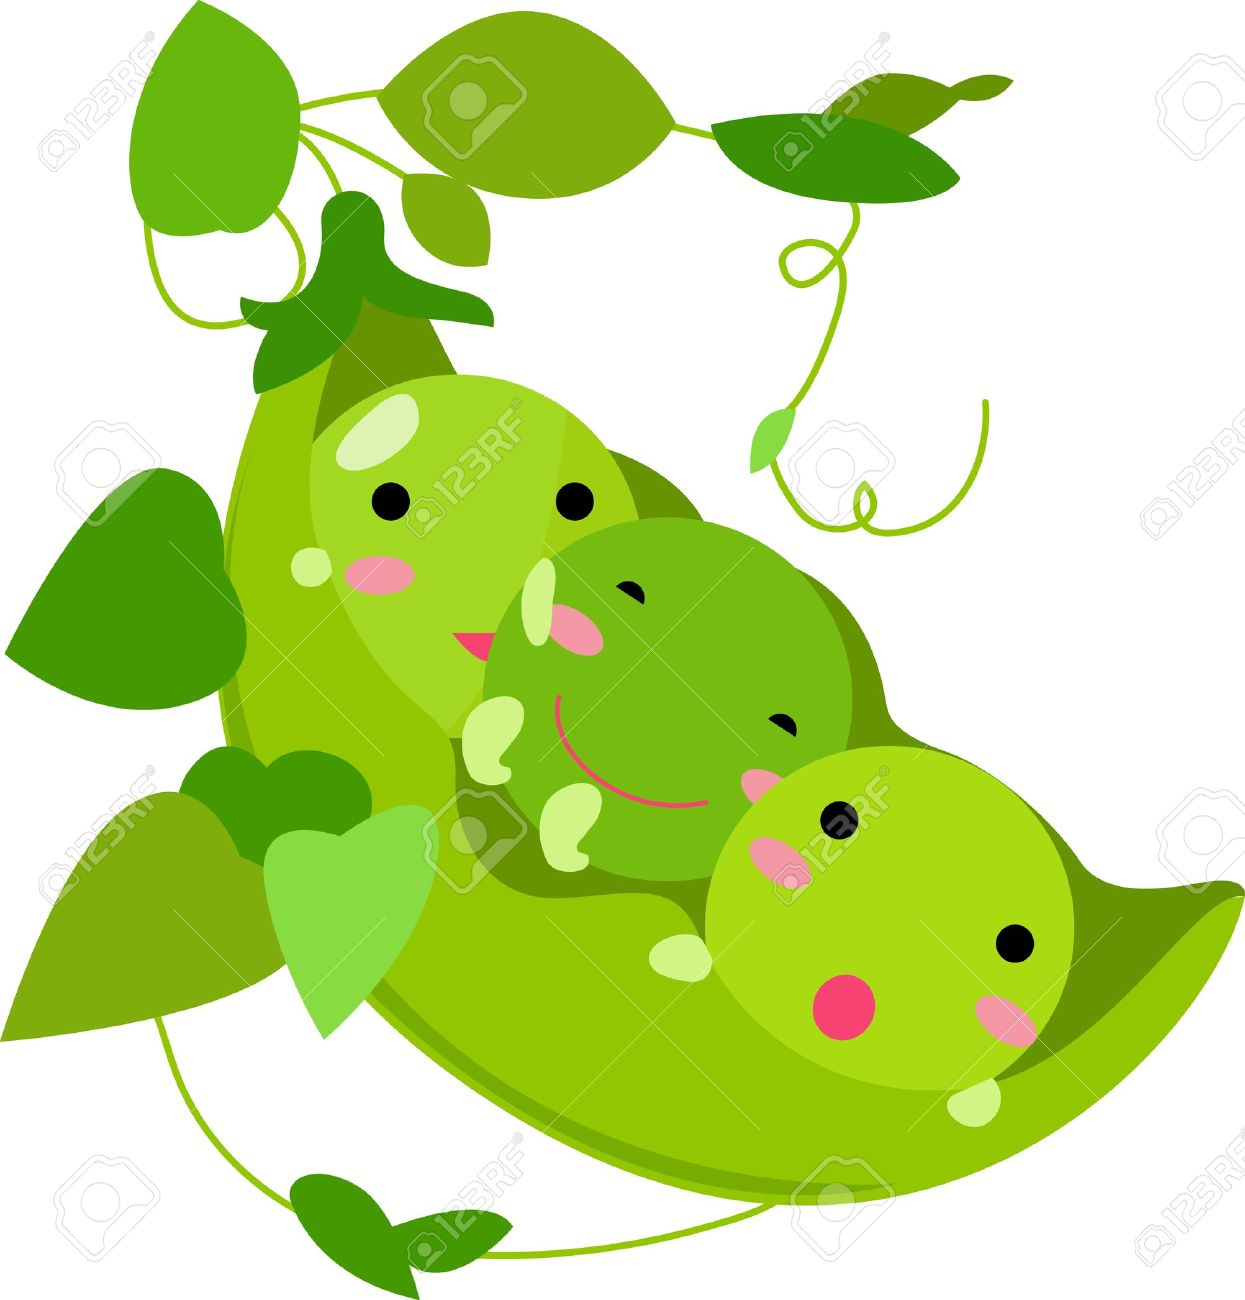 Peas Clipart   Free download best Peas Clipart on ...